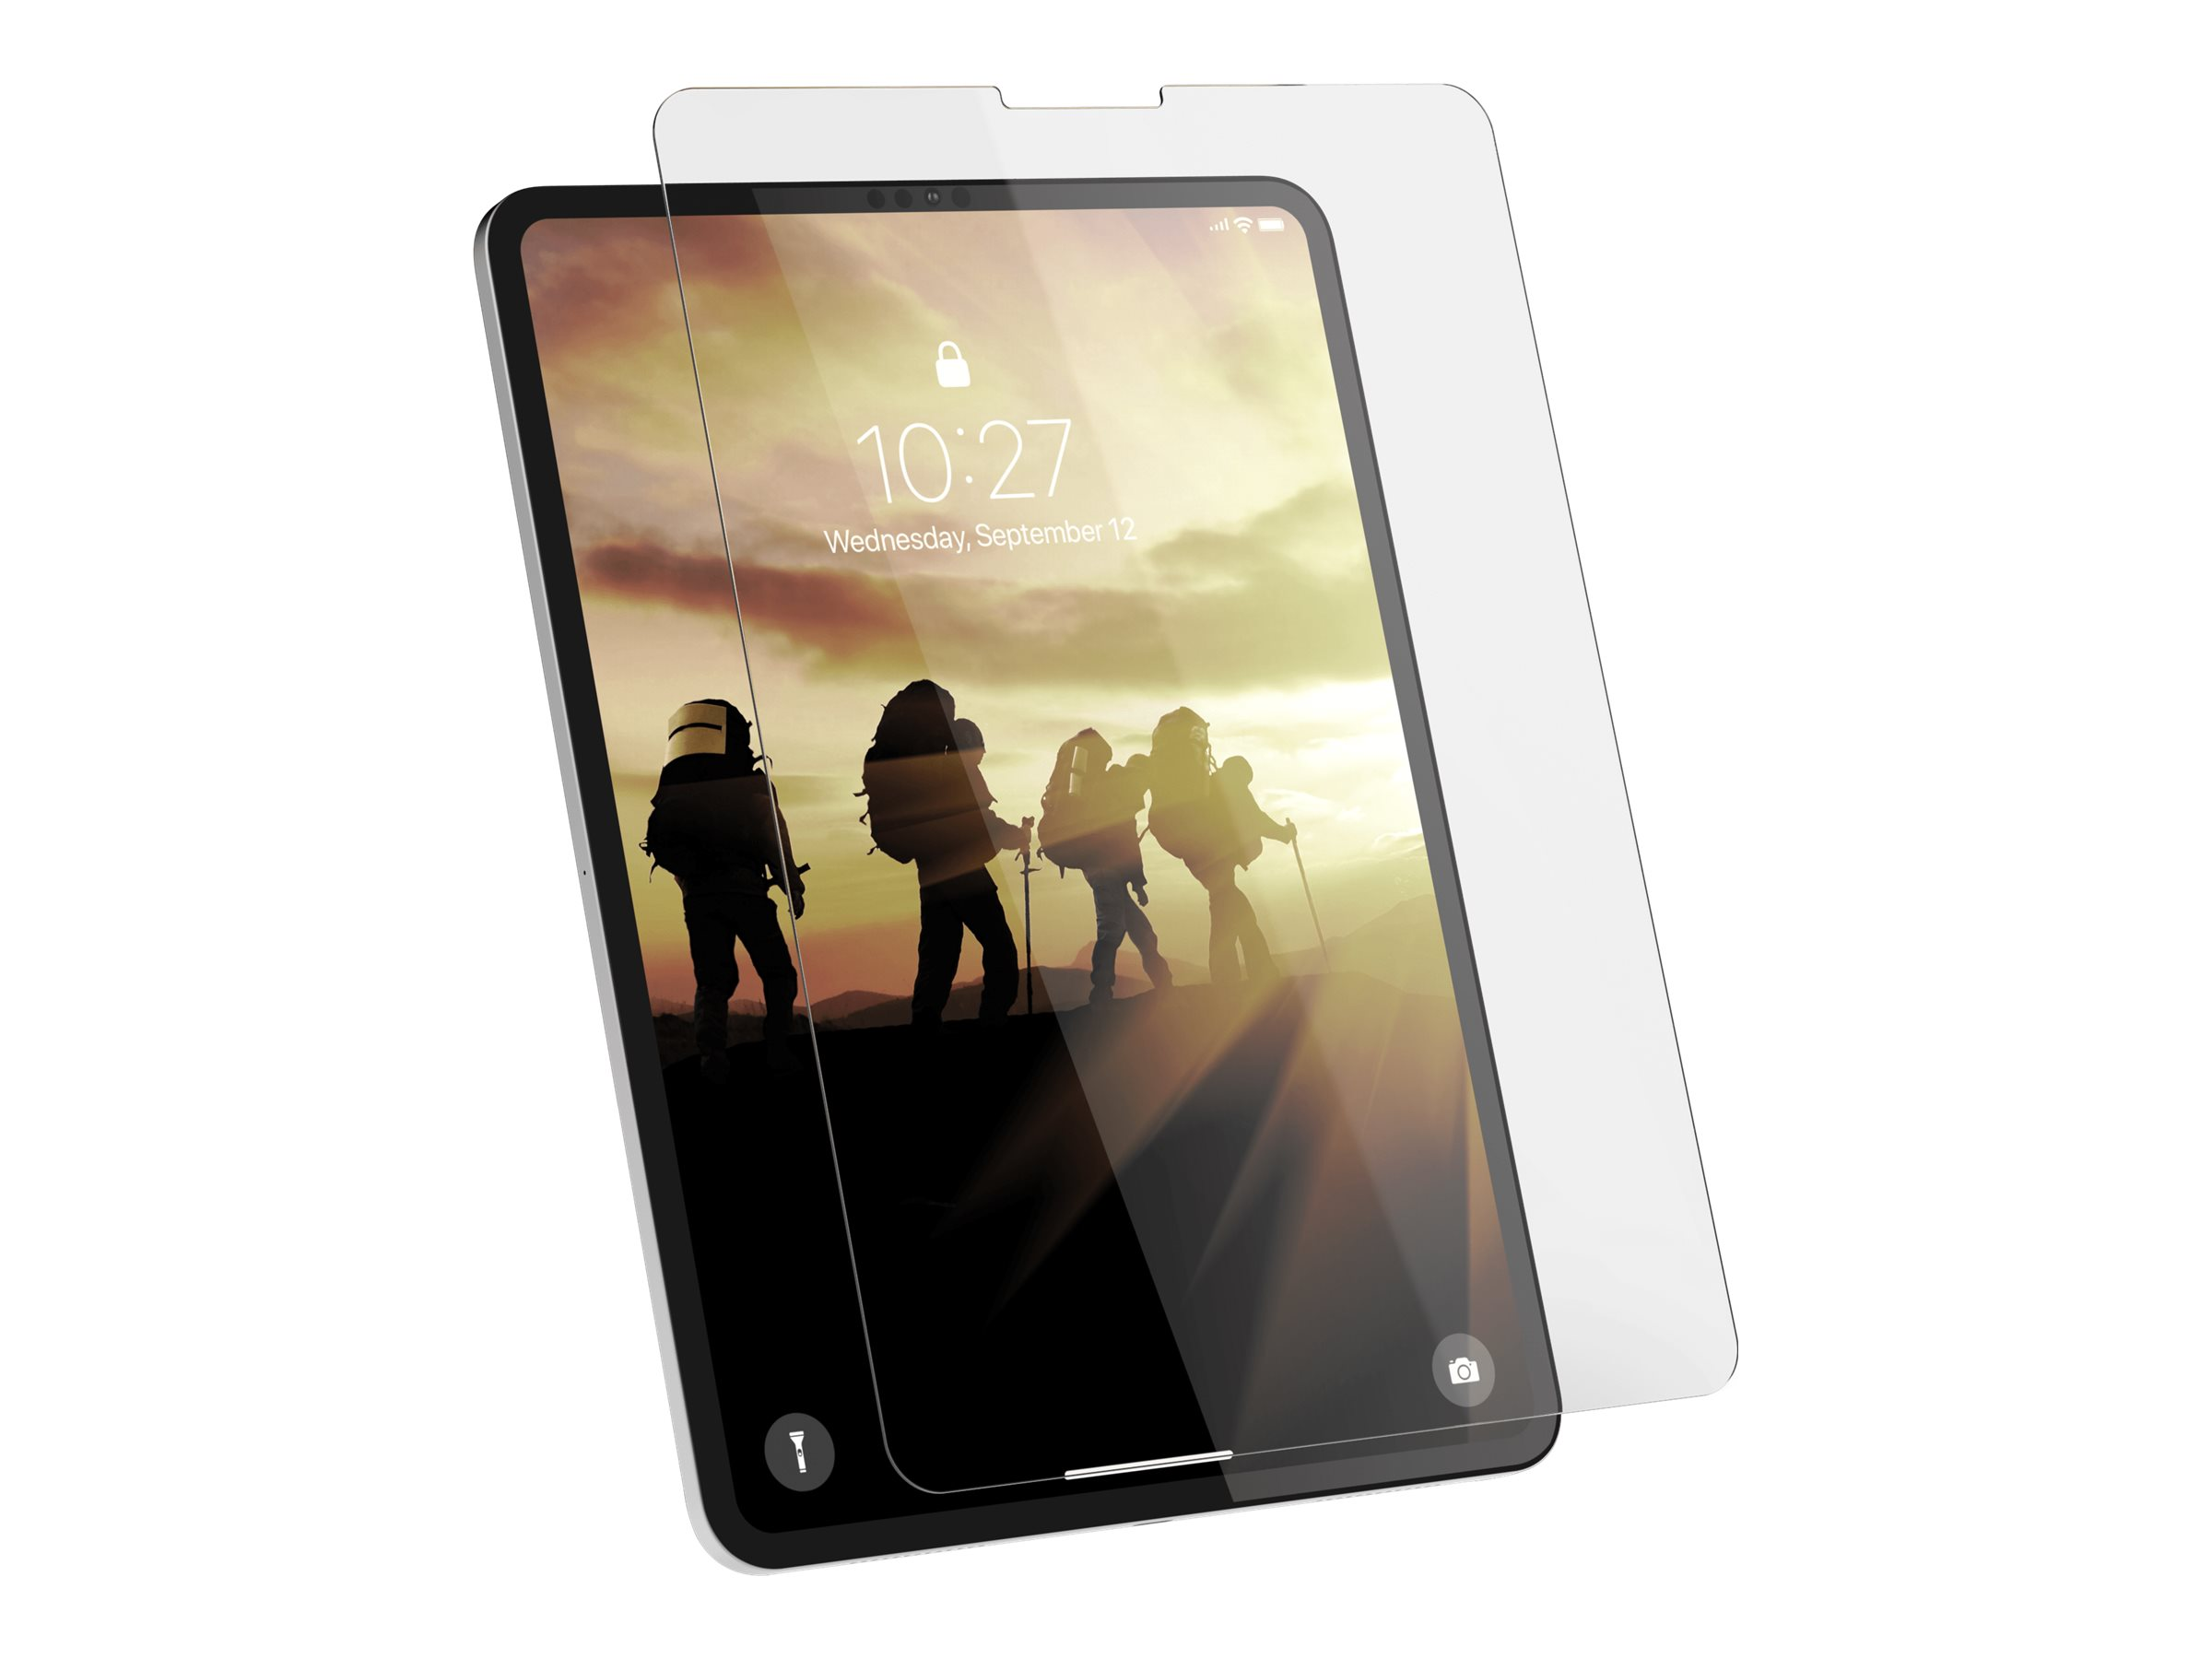 UAG Tempered Glass Screen Shield for iPad Pro 11-inch - screen protector for tablet